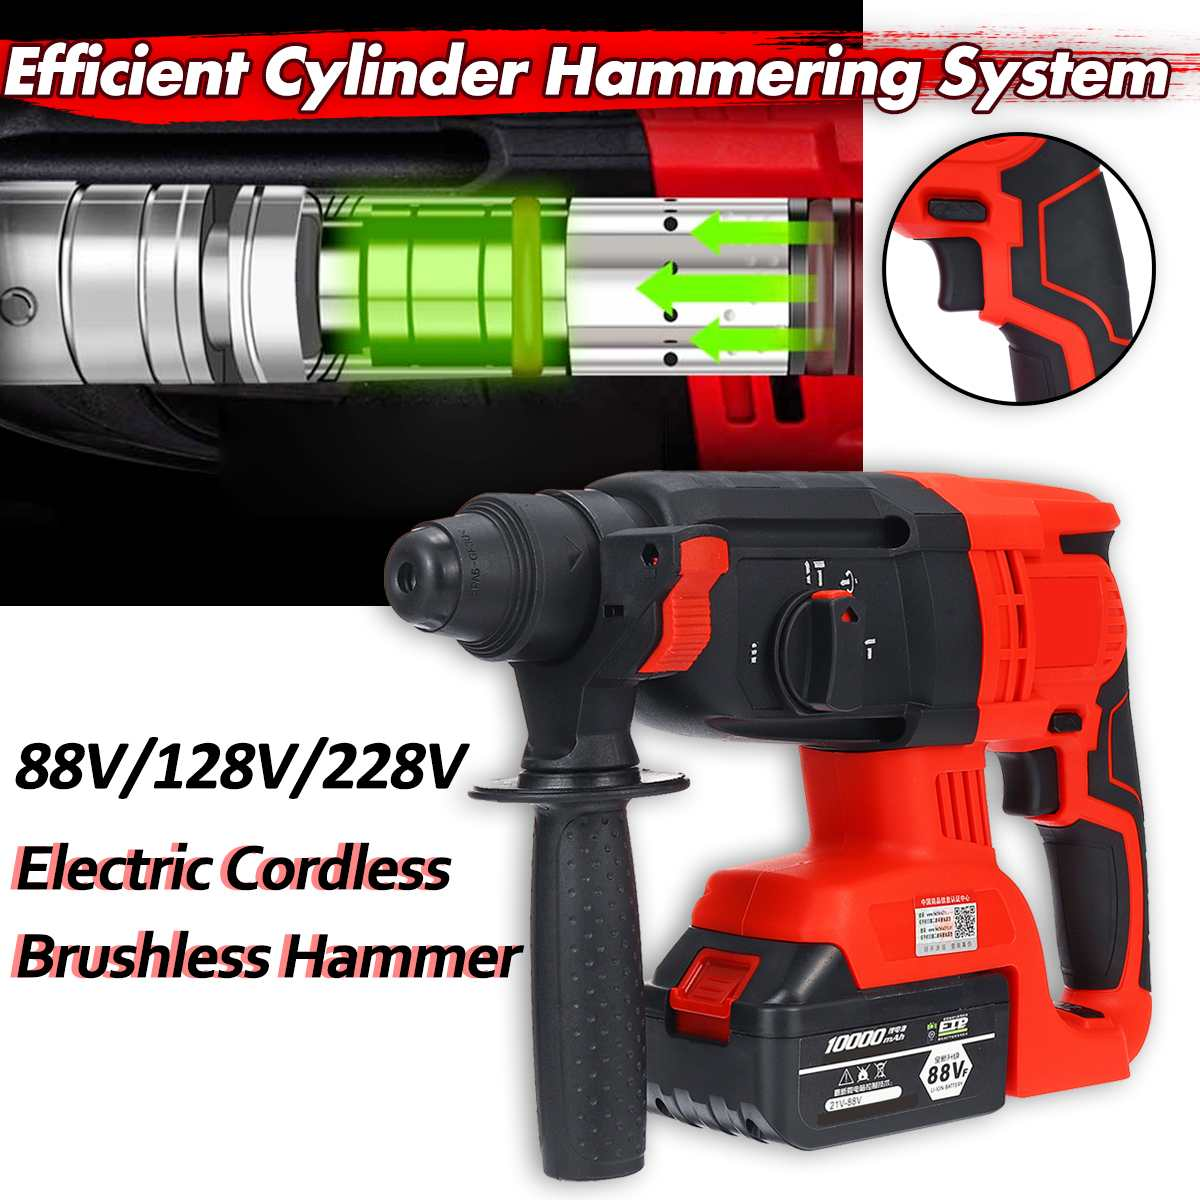 100-240V 3 In 1 88V/128V/228V Electric Cordless Brushless Hammer Impact Power Drill With 10000/19800/25800mAh Lithium Battery